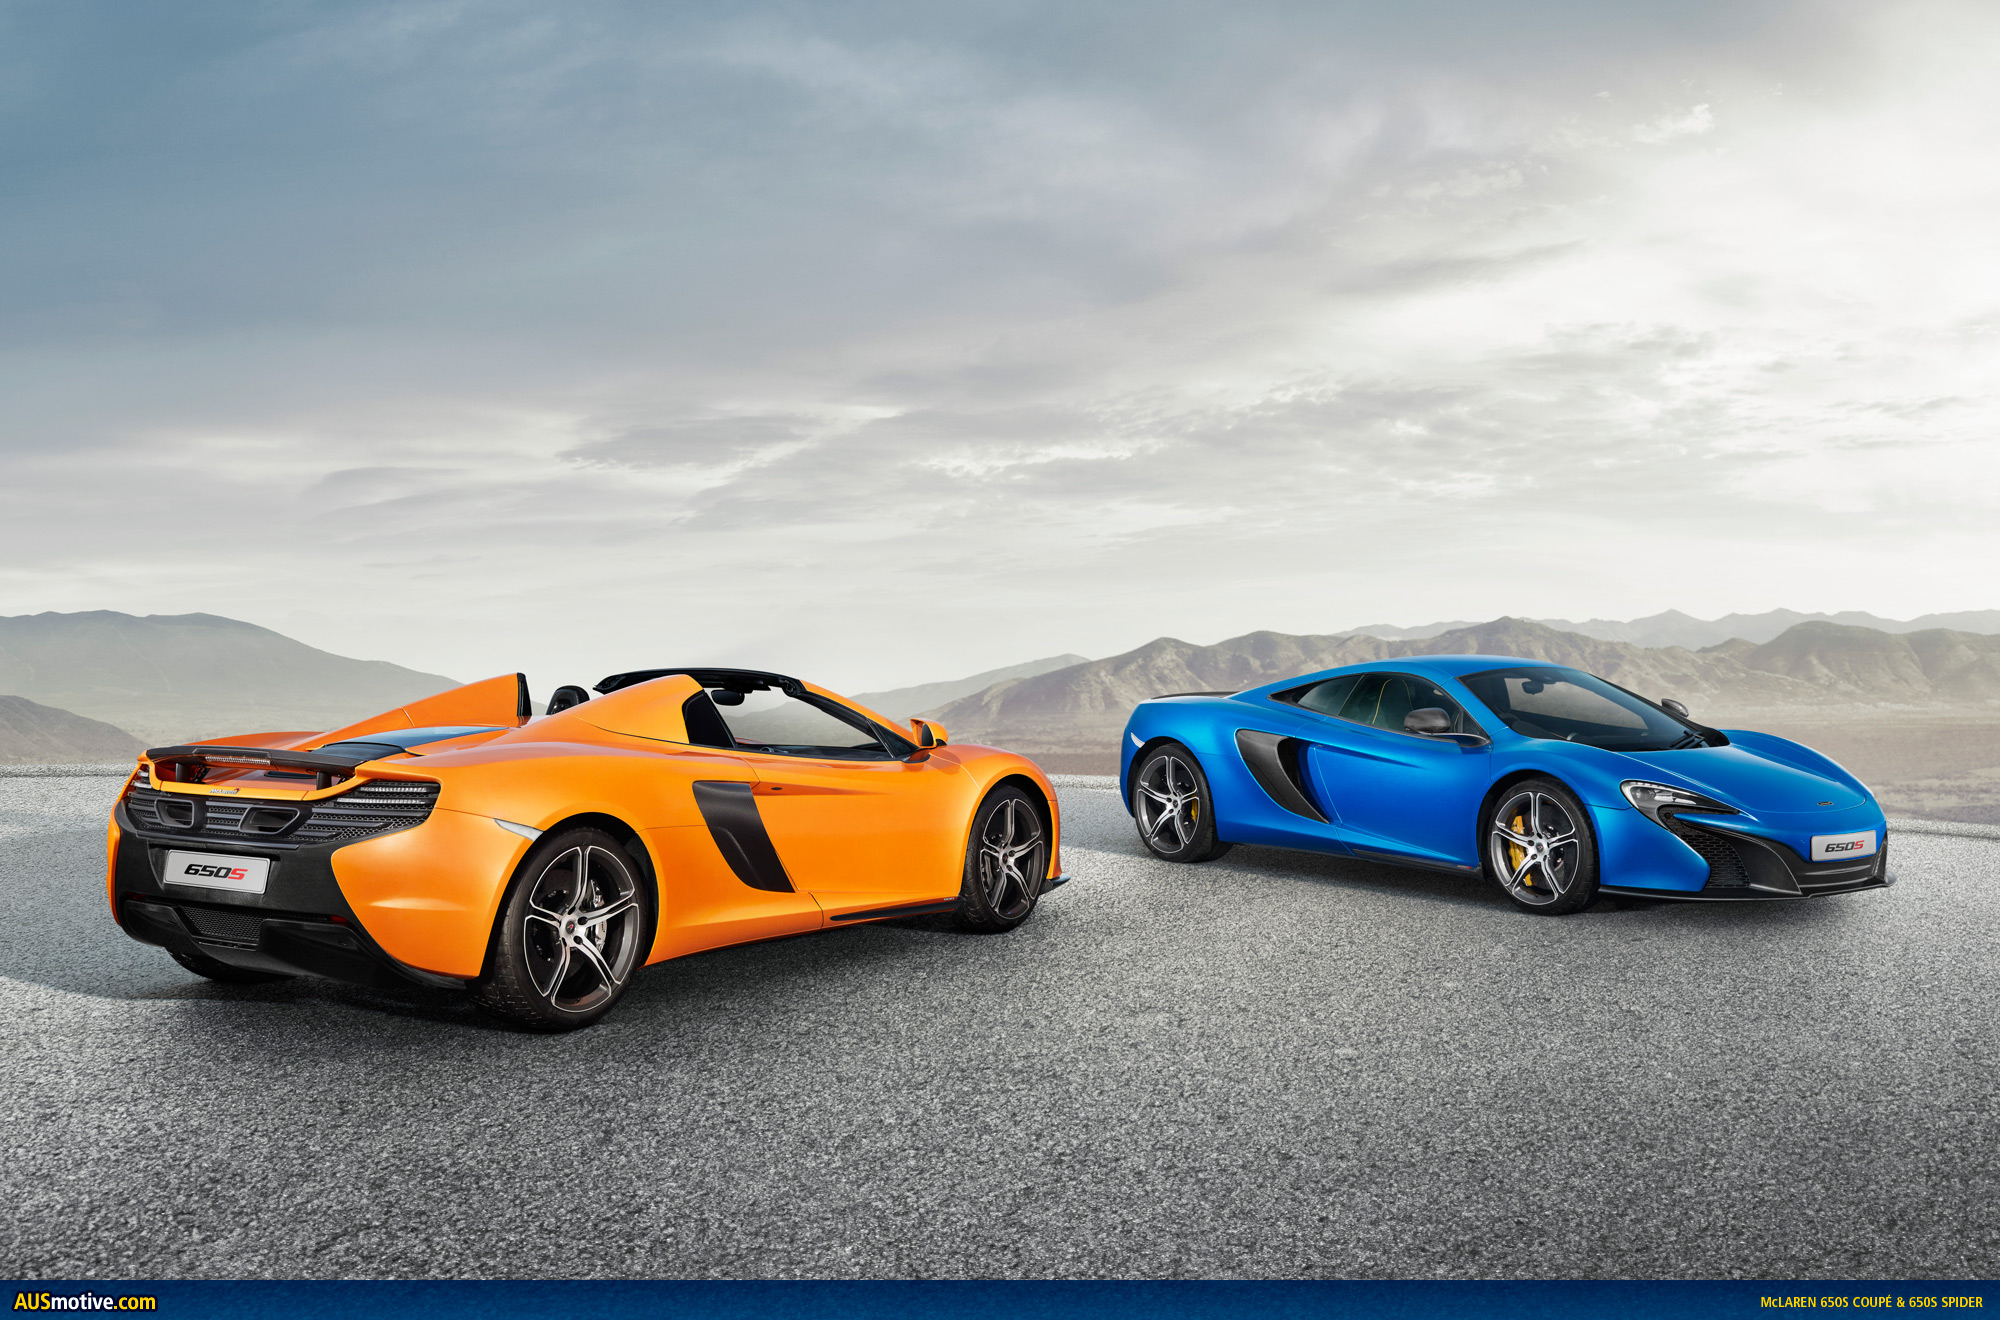 How Much Does A New Transmission Cost >> AUSmotive.com » Geneva 2014: McLaren 650S & 650S Spider